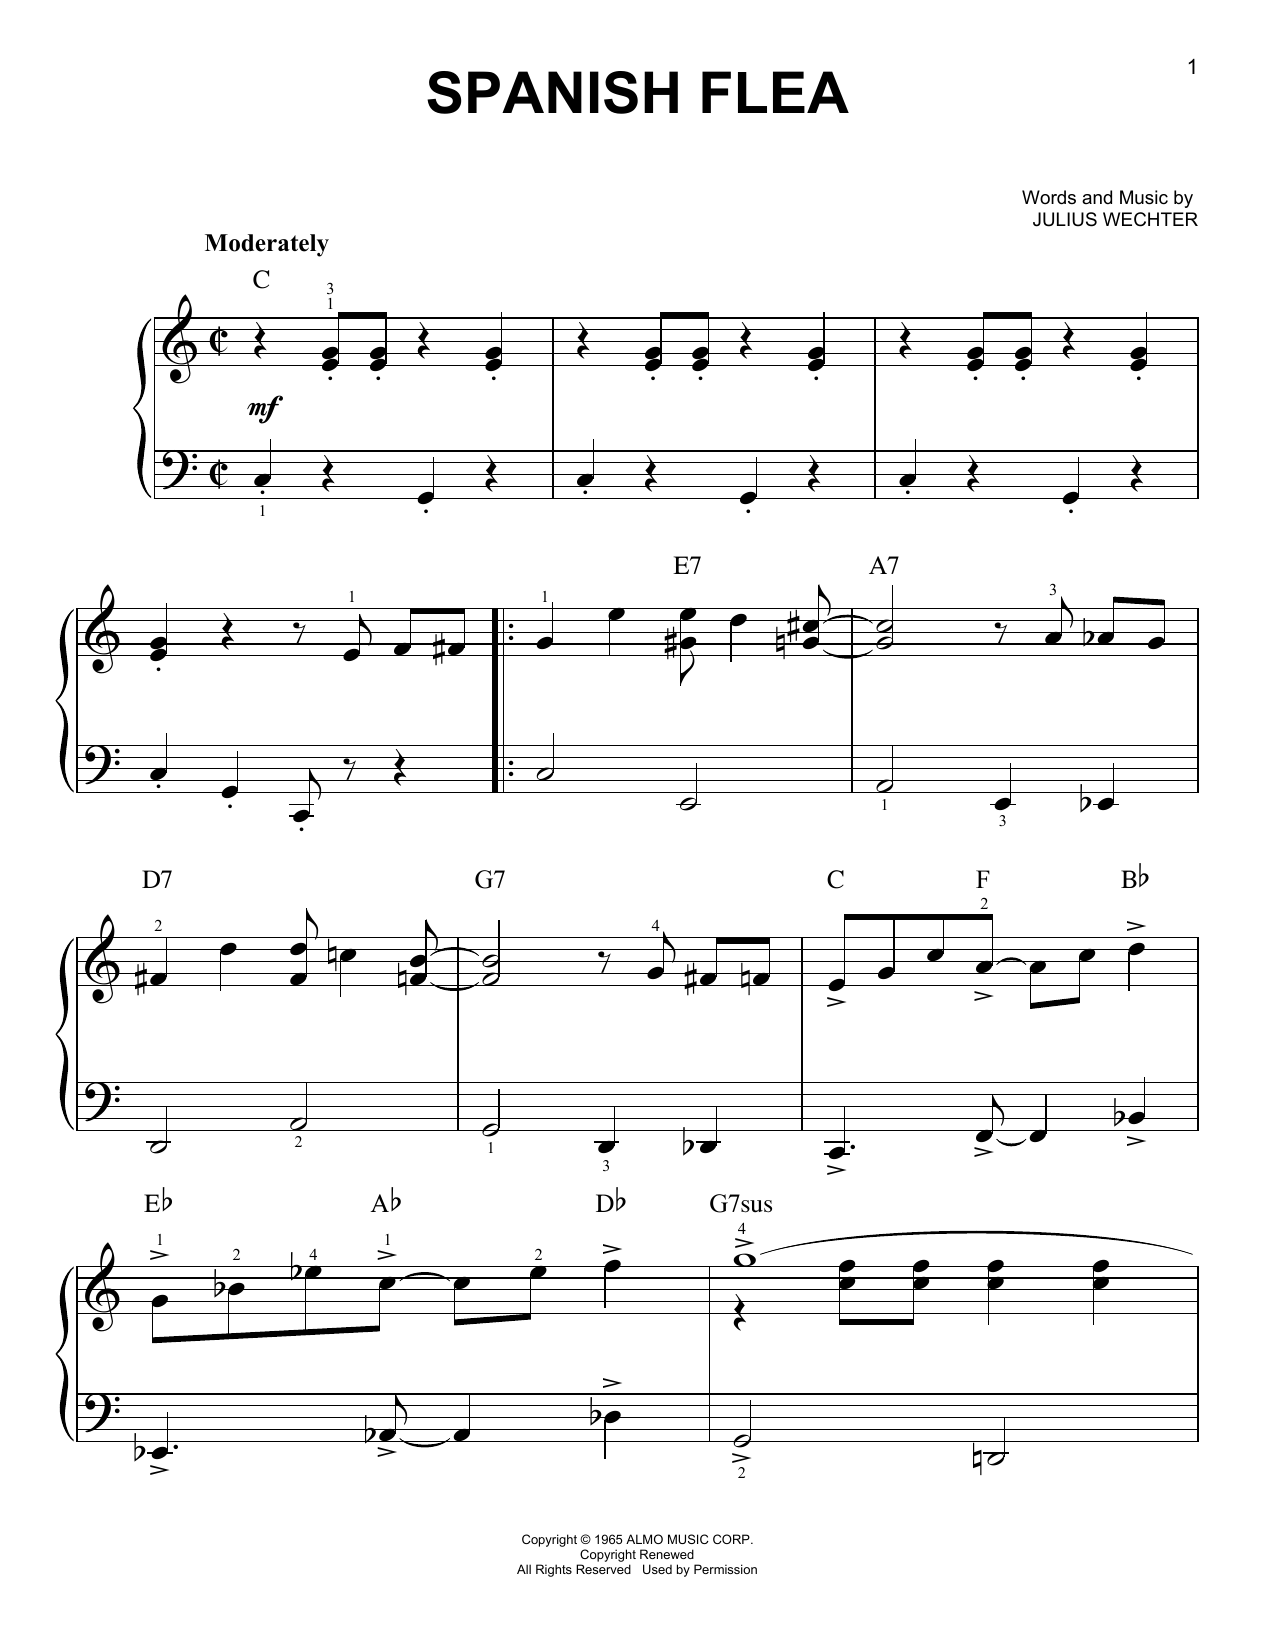 Spanish Flea sheet music for piano solo (chords) by Julius Wechter